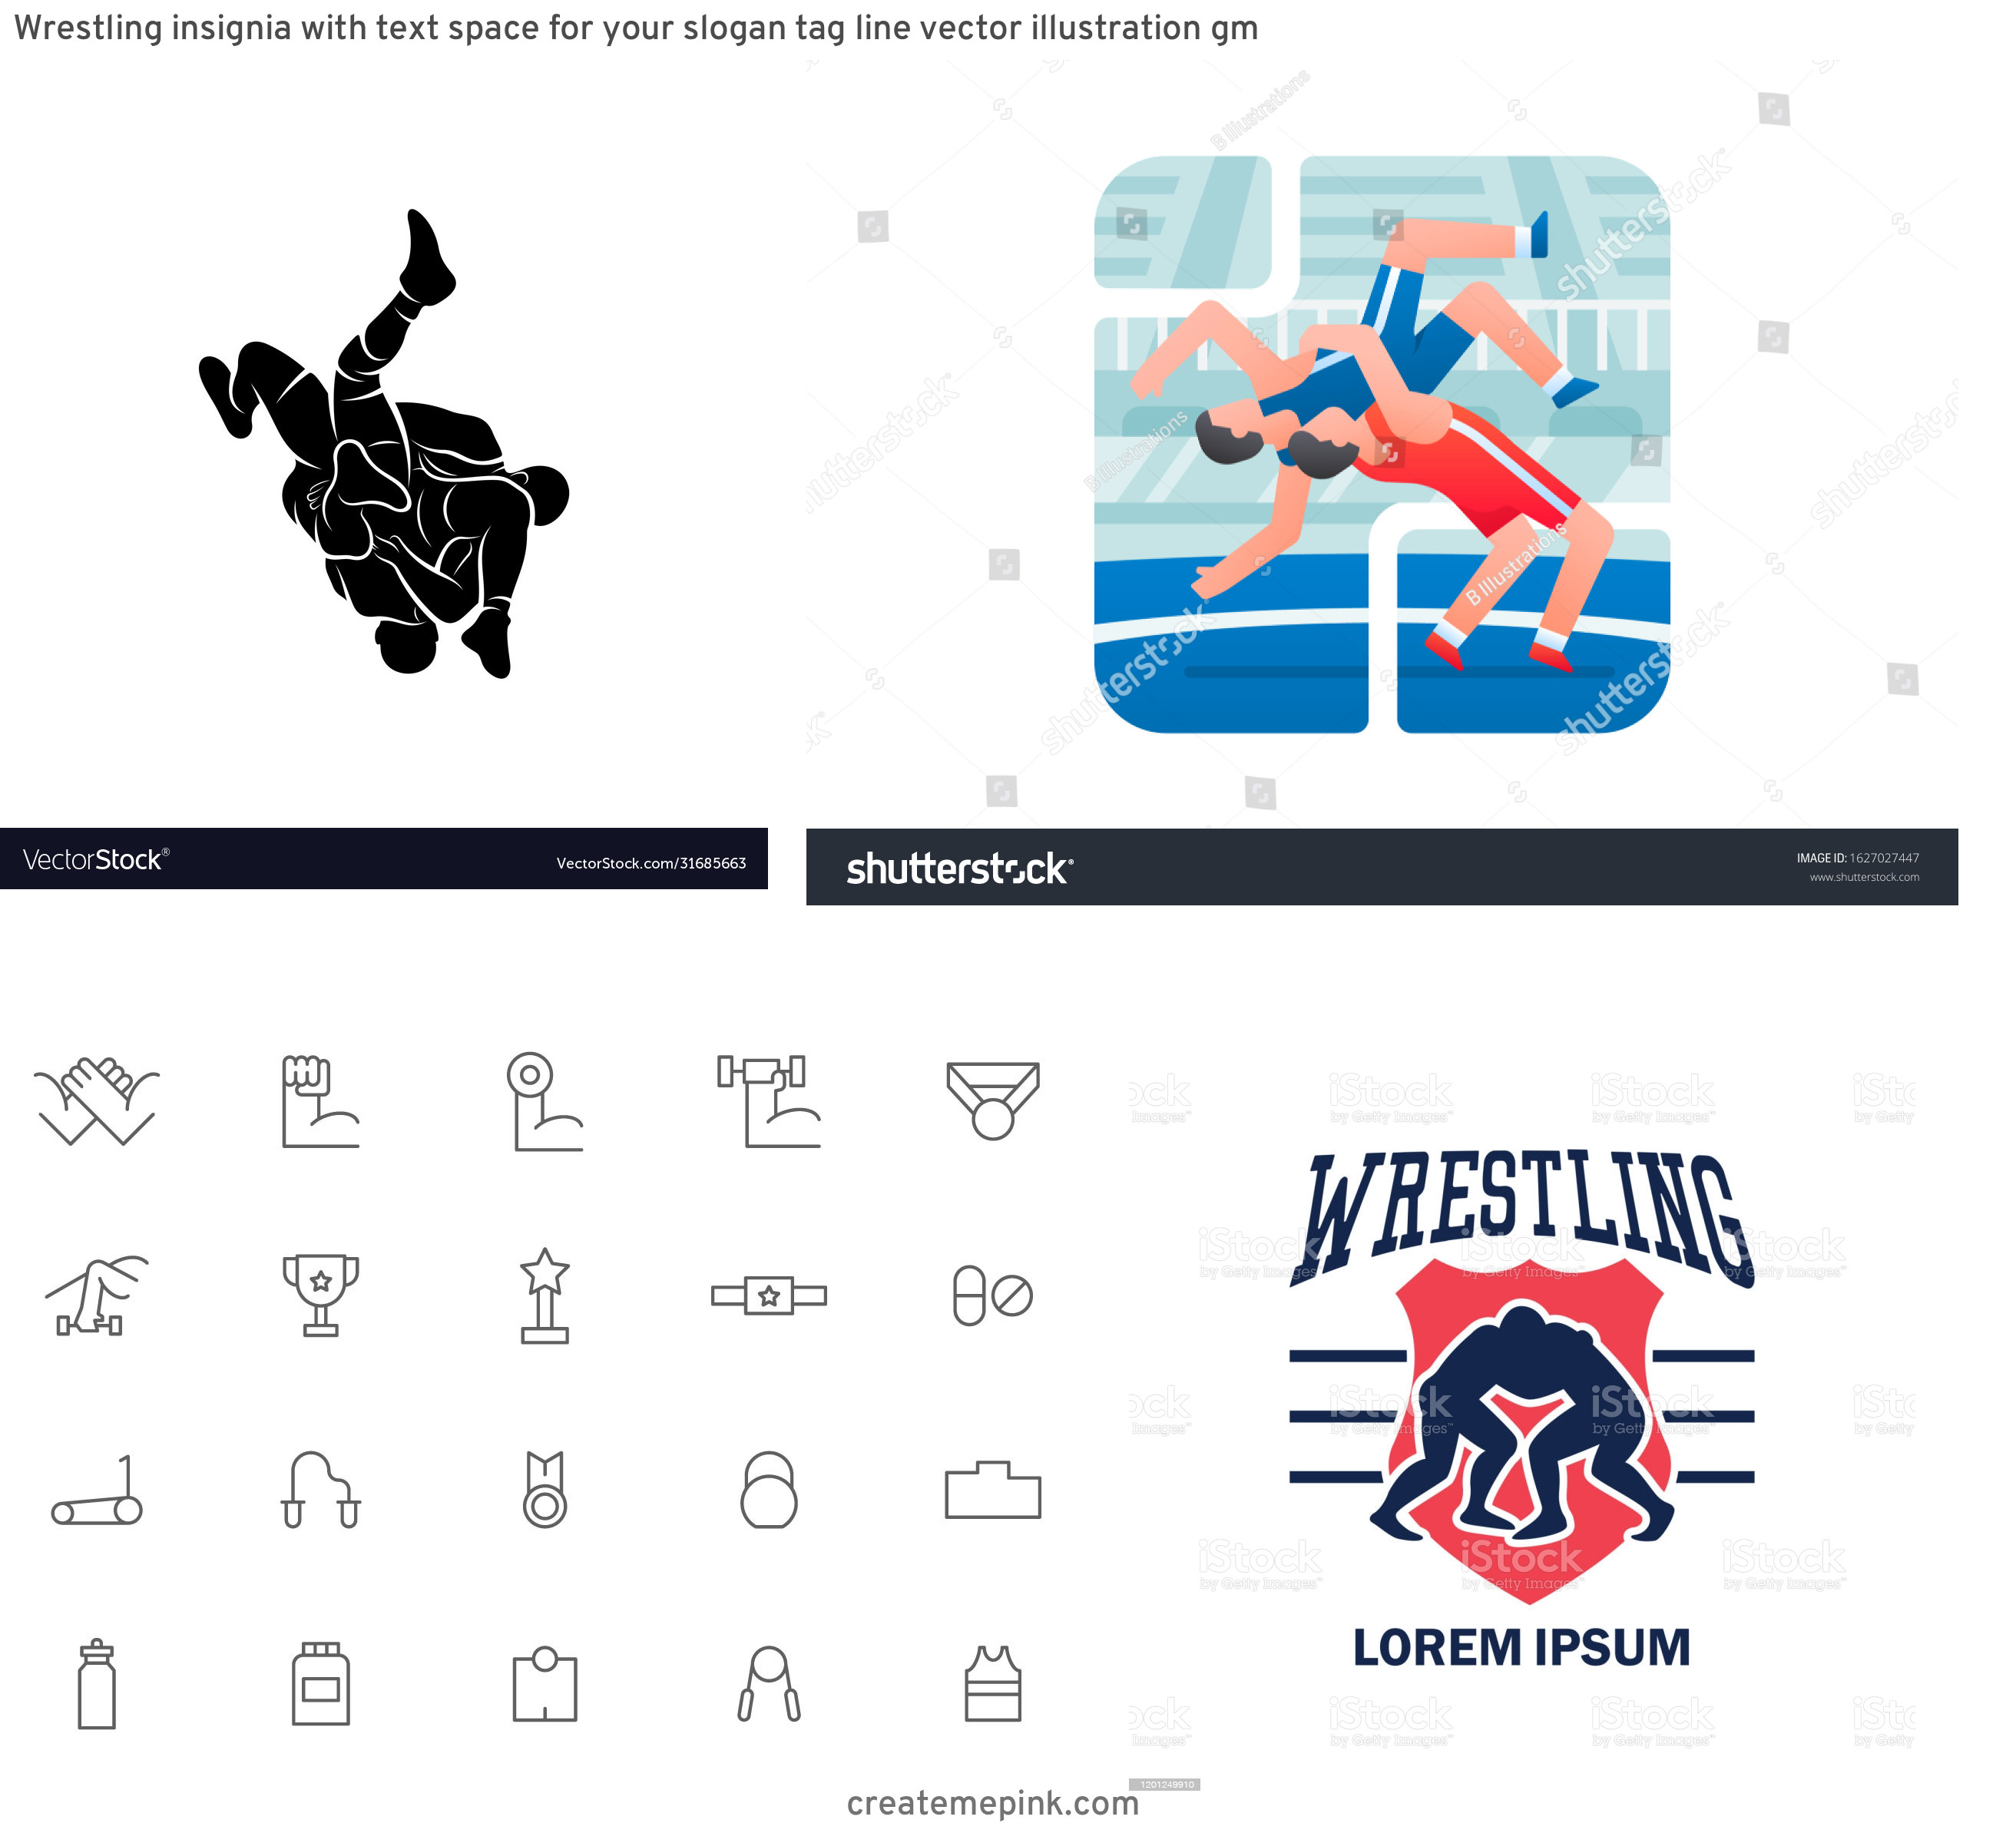 Vector Wrestling Mat: Wrestling Insignia With Text Space For Your Slogan Tag Line Vector Illustration Gm